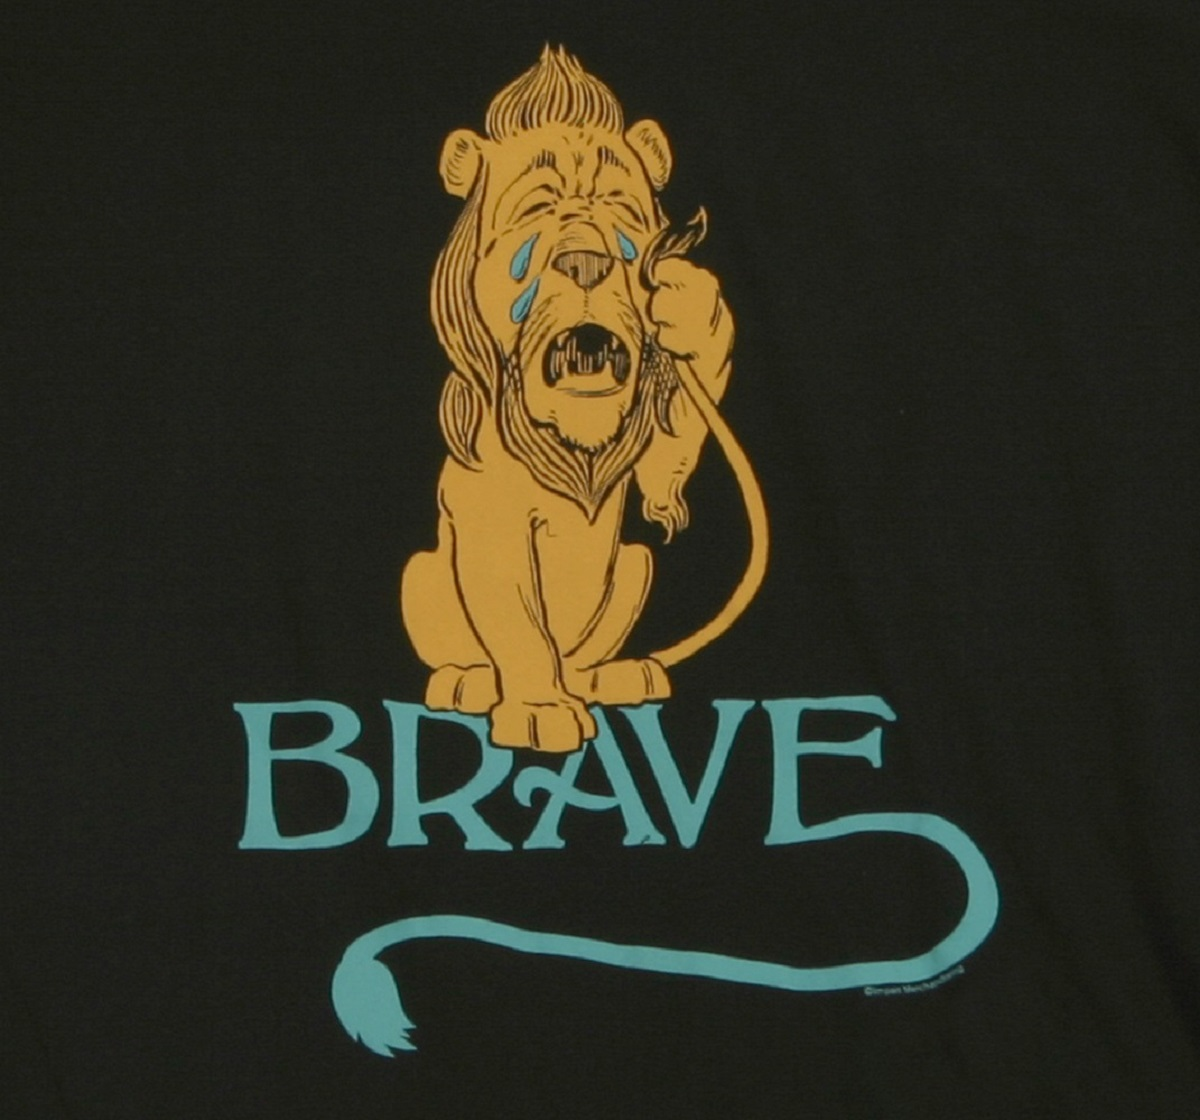 00 cowardly lion. 31.08.13